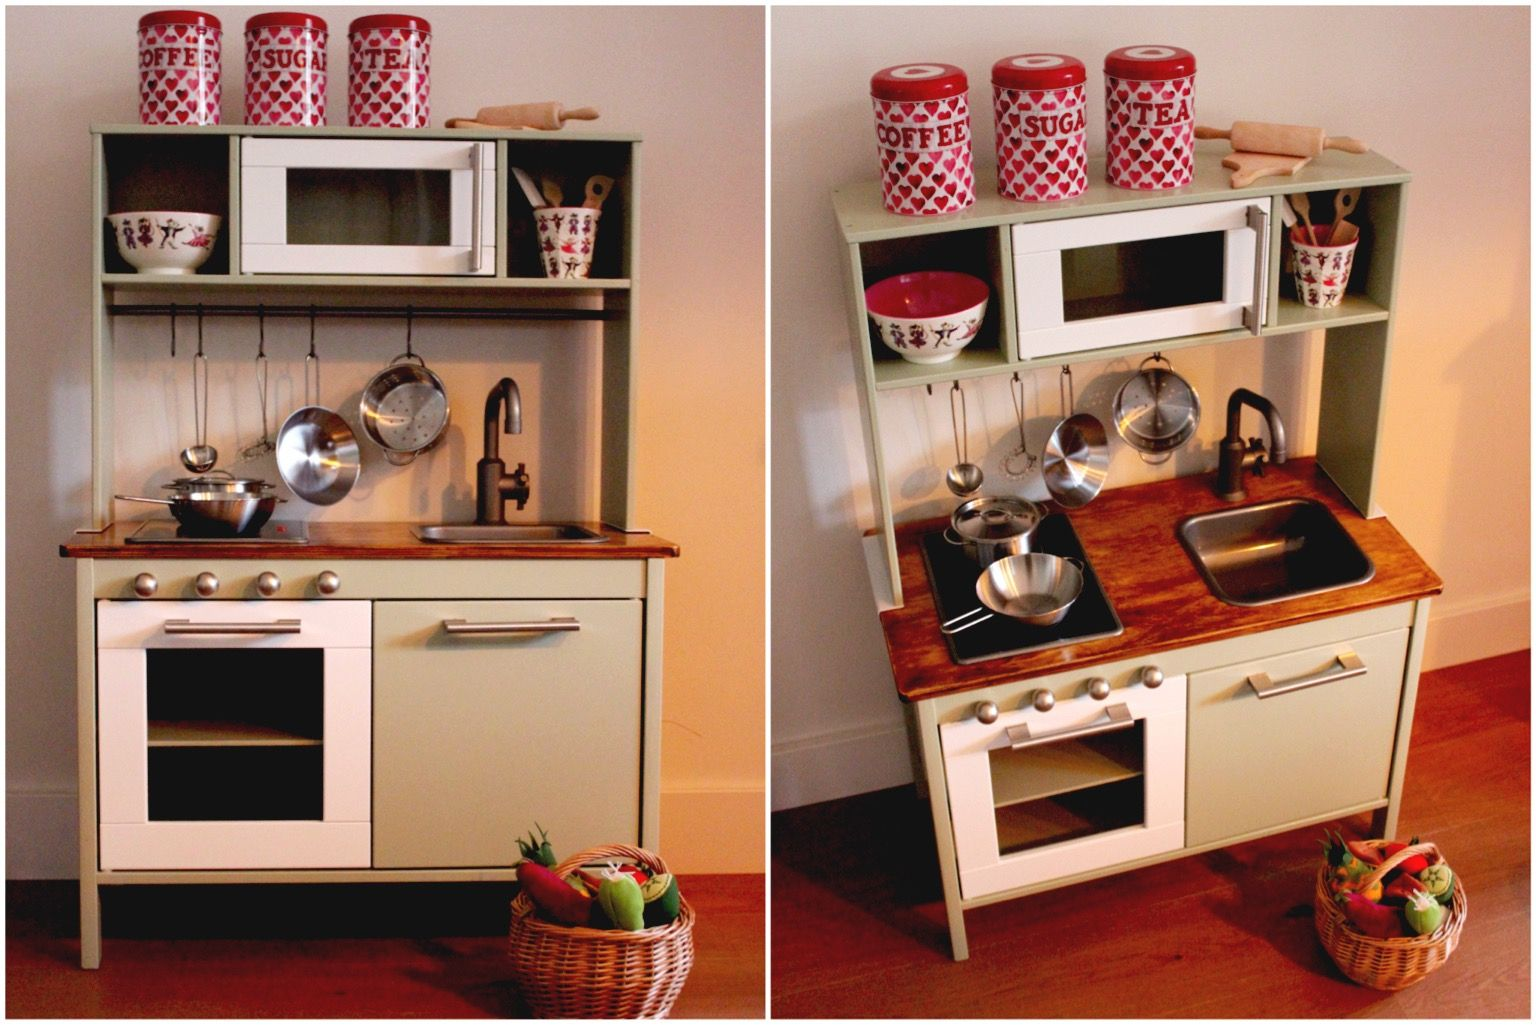 Ikea Speelgoed Keuken Pimpen : Pin it Like Image